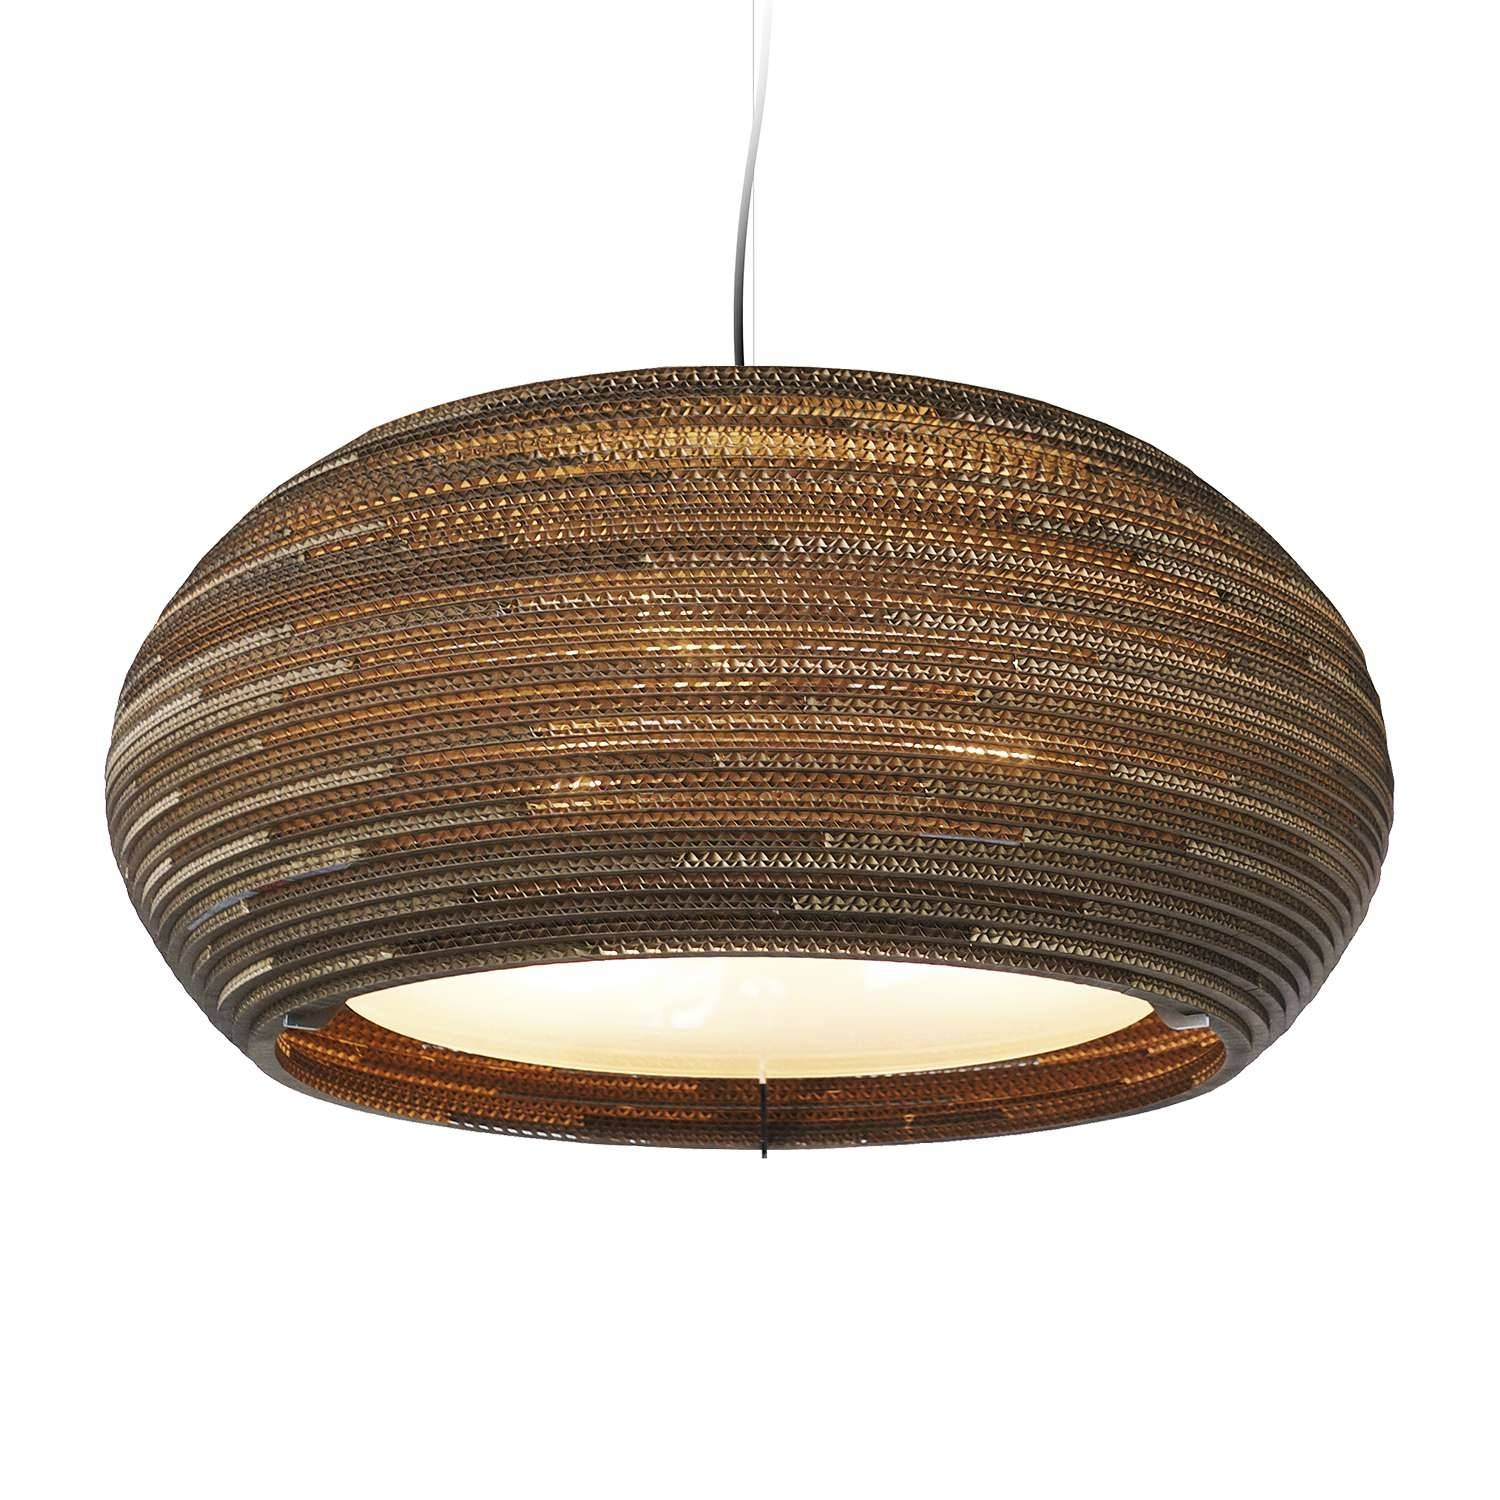 Ohio24 Scraplight Natural Pendant Lightgraypants | Ylighting Pertaining To Natural Pendant Lights (View 10 of 15)